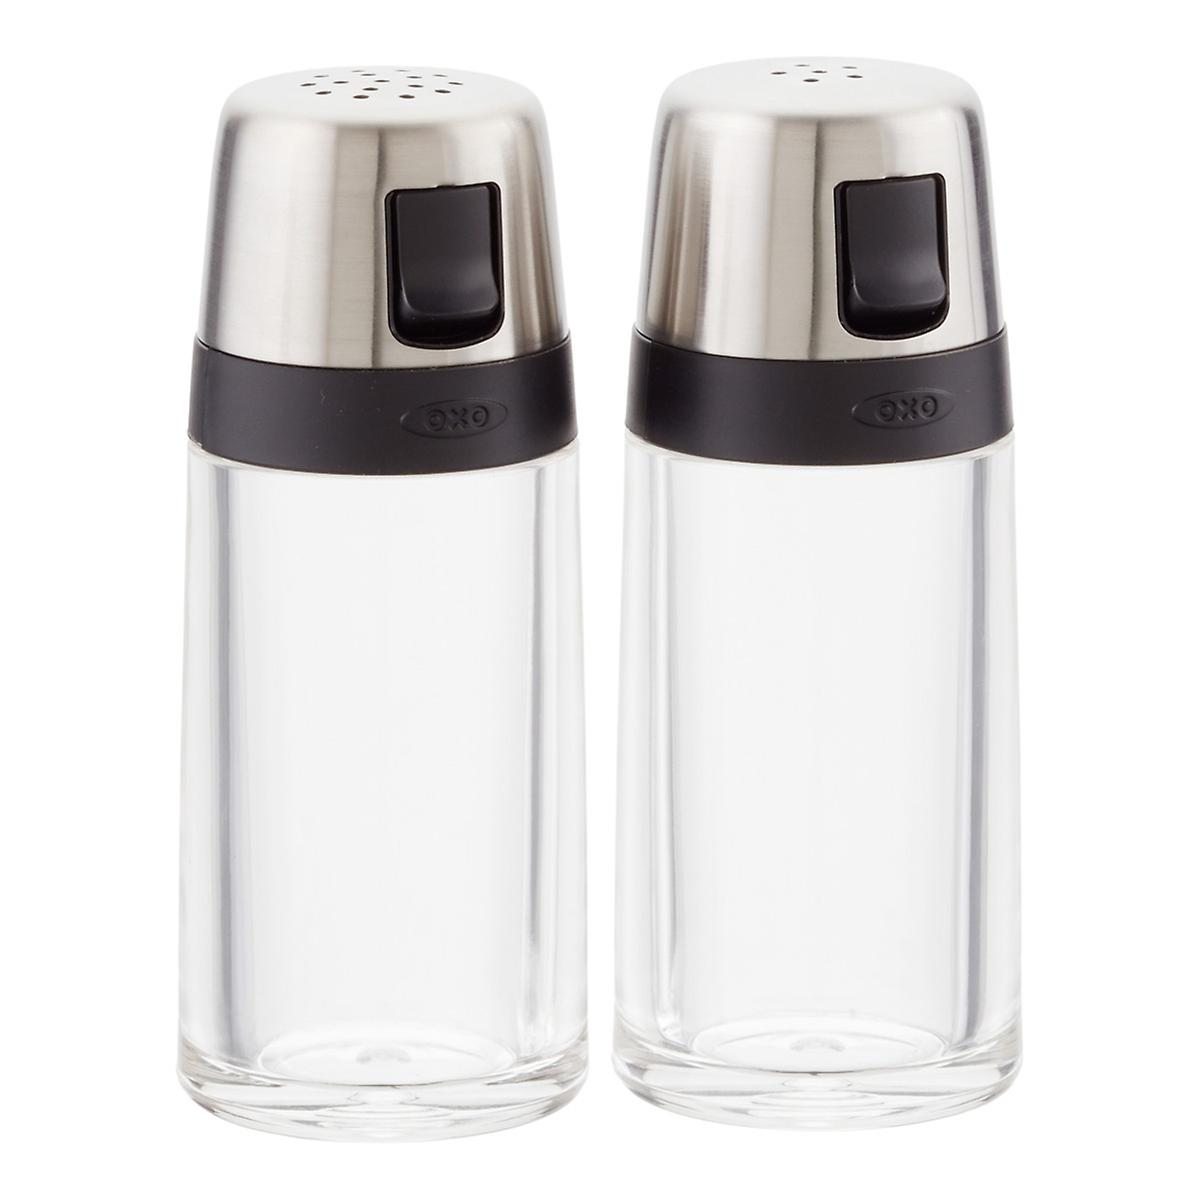 Oxo Good Grips Salt Pepper Shakers The Container Store Signora Hand Vacuum